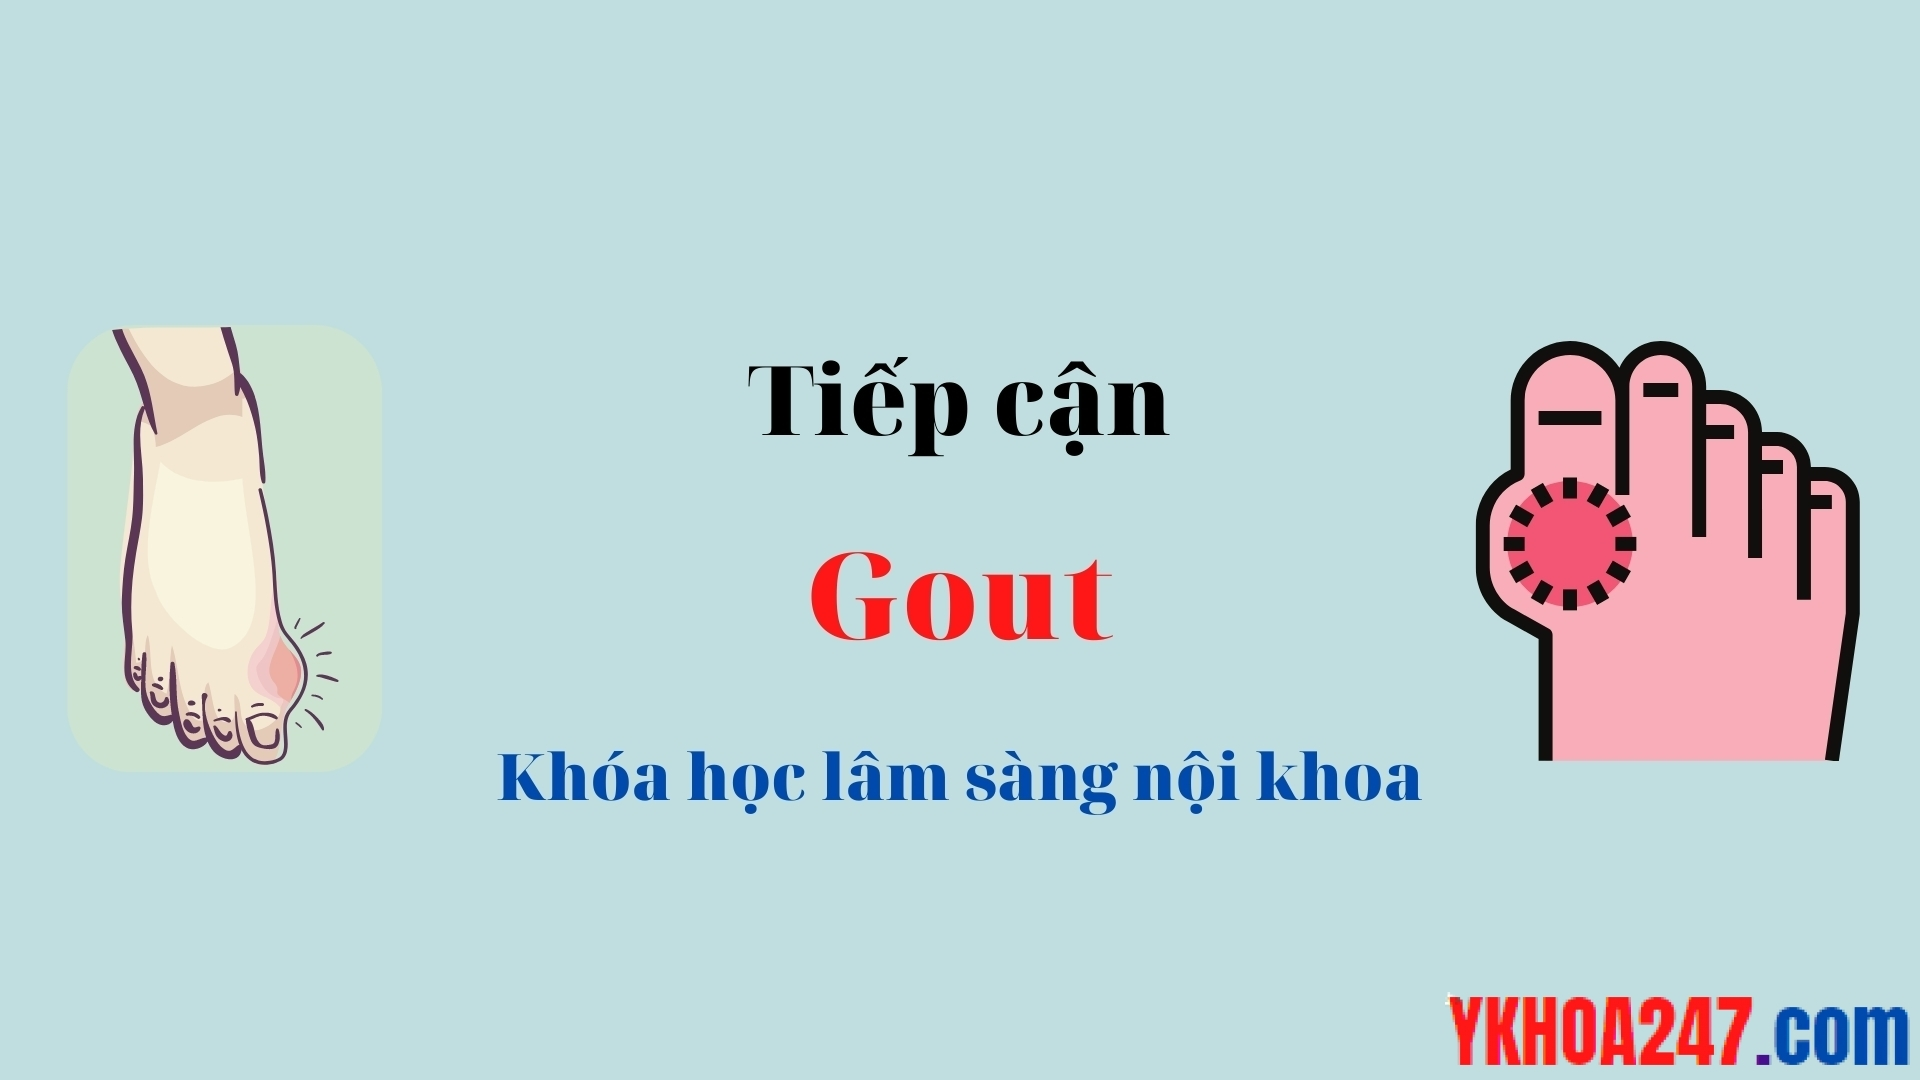 tiep can gout